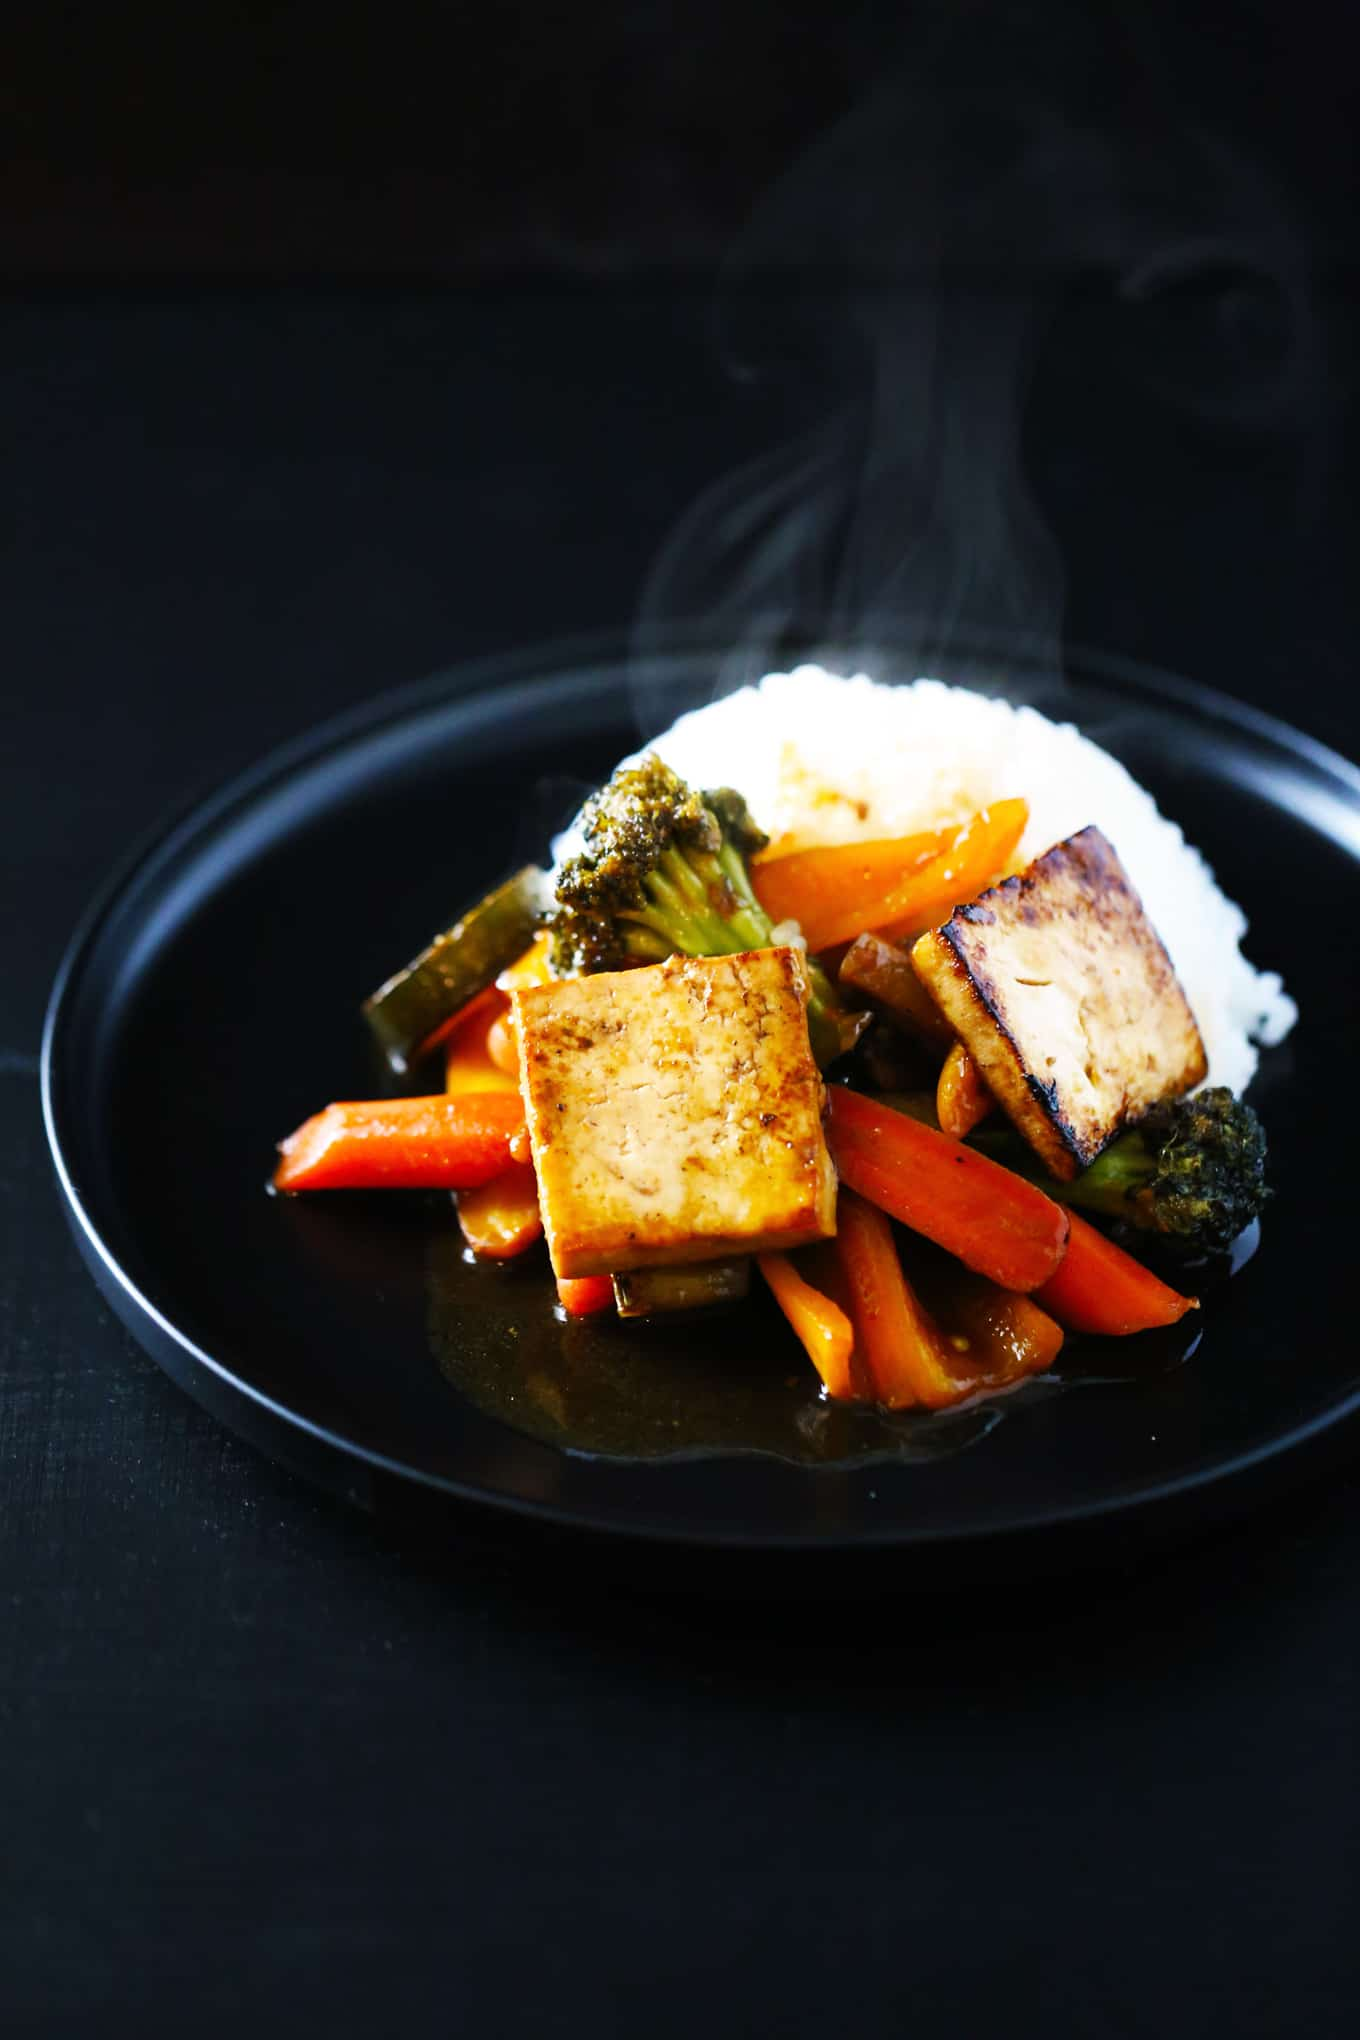 str-fry veggies & tofu with stir-fry sauce and rice on a black plate.